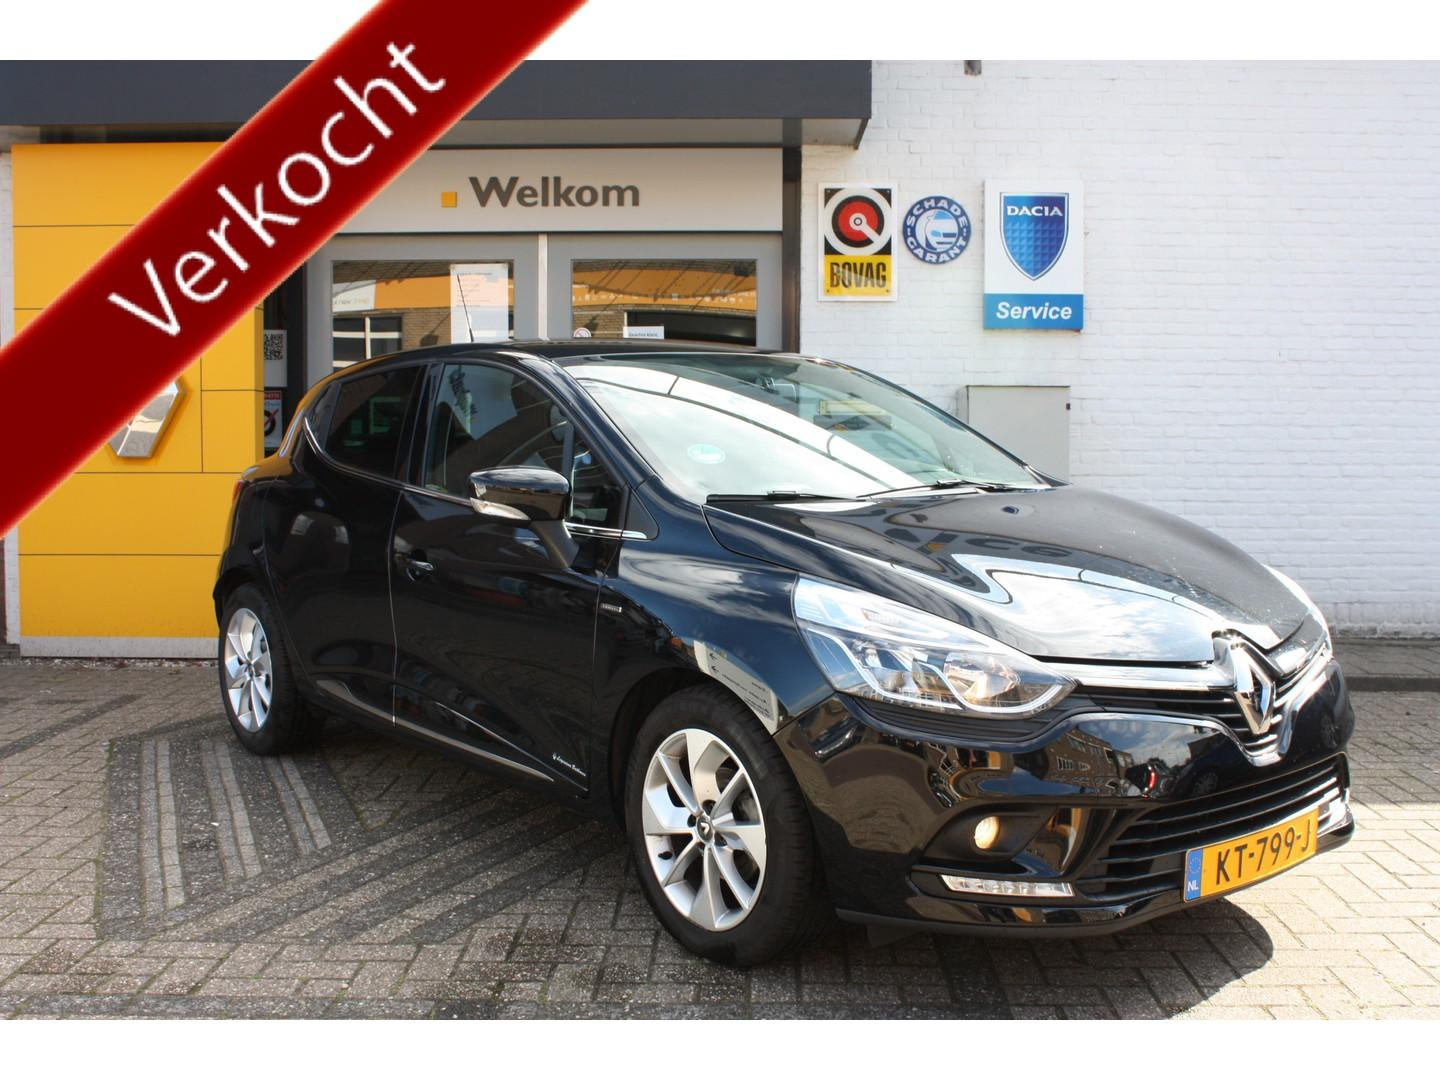 Renault Clio Iv hb tce 90 limited, navi + airco + pdc, nl auto